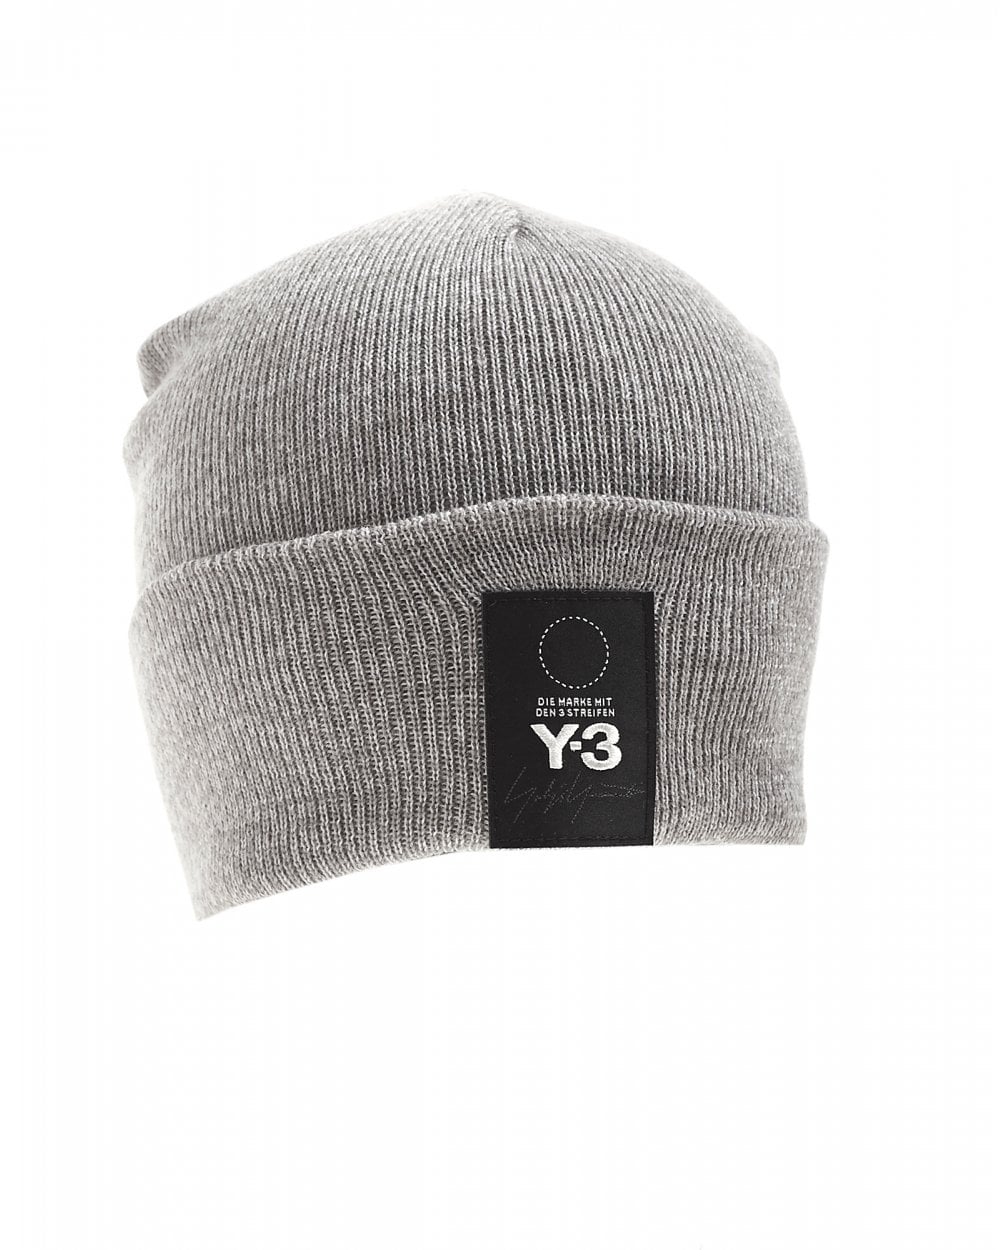 e8dc66dbe Mens Patch Logo Beanie, Grey Ribbed Hat